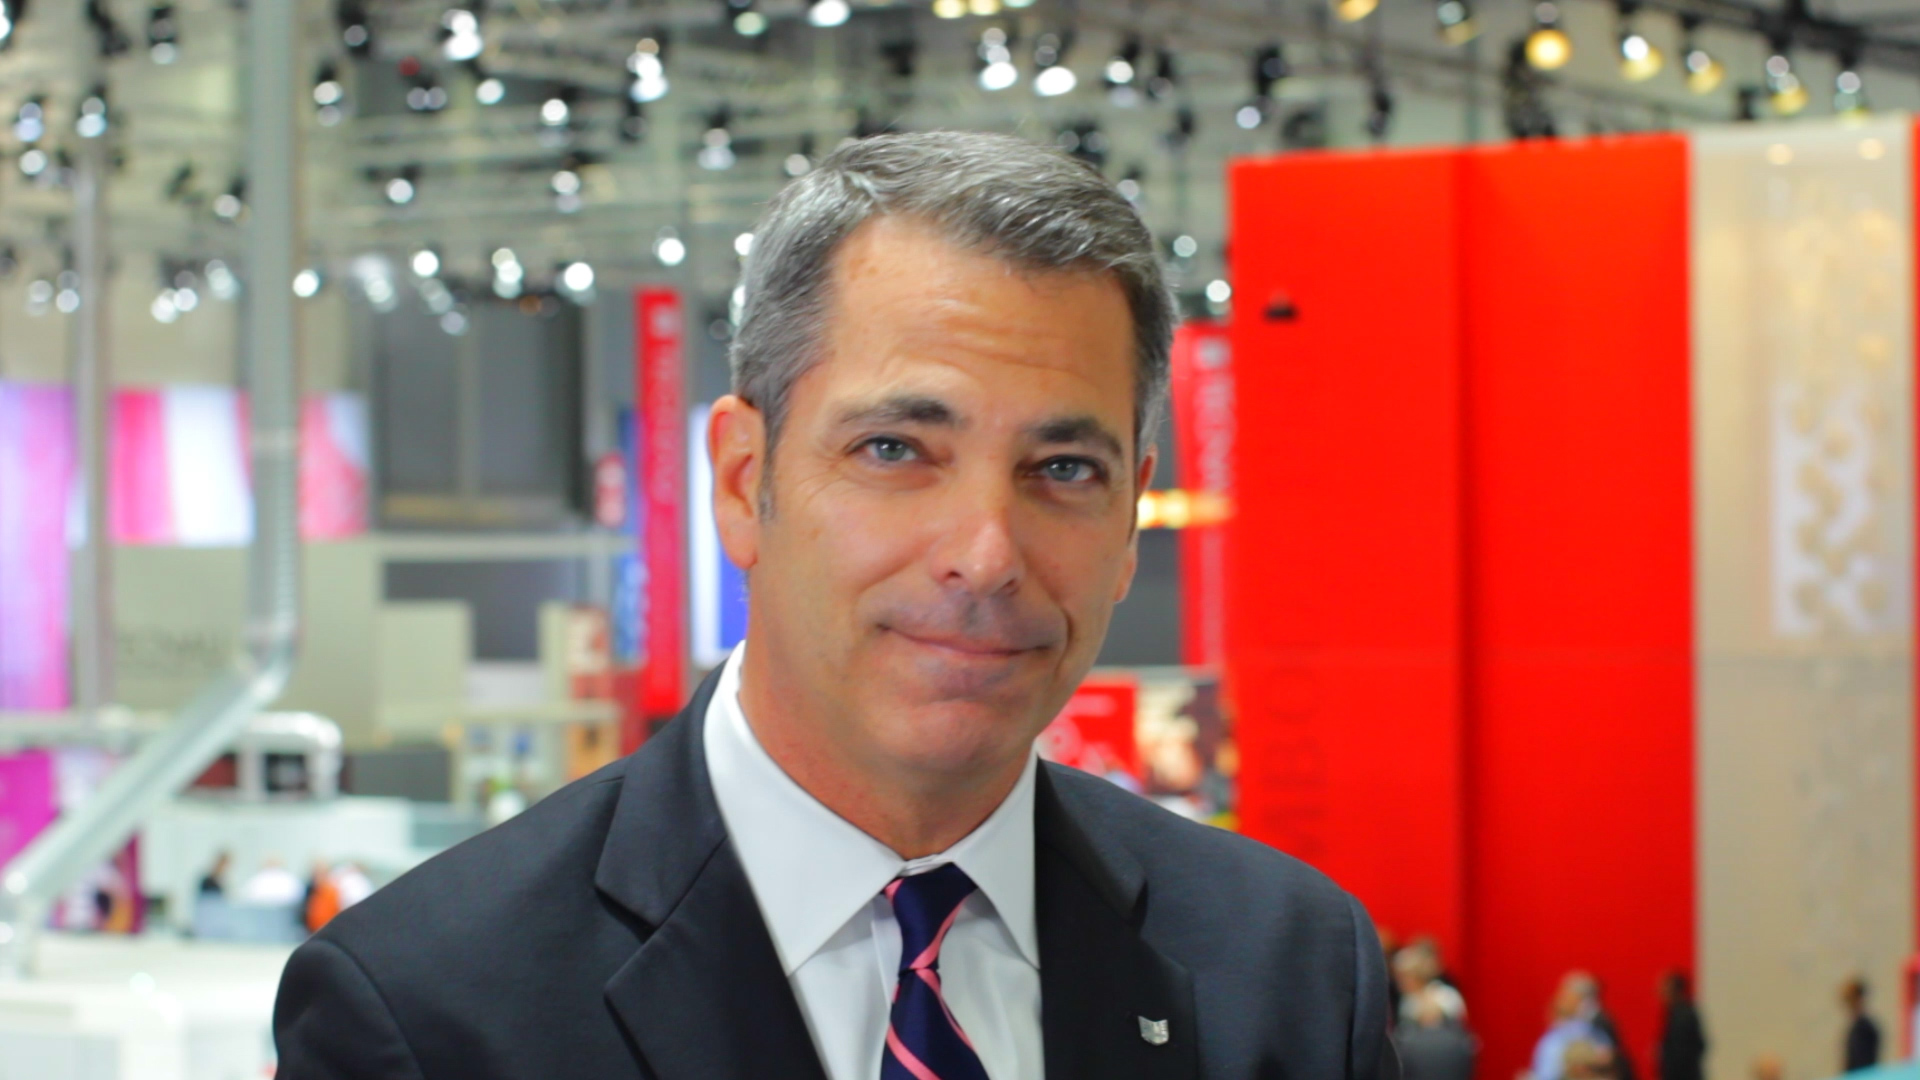 Video preview: How Canon Solution America's Inkjet Technologies Impact Their Customers